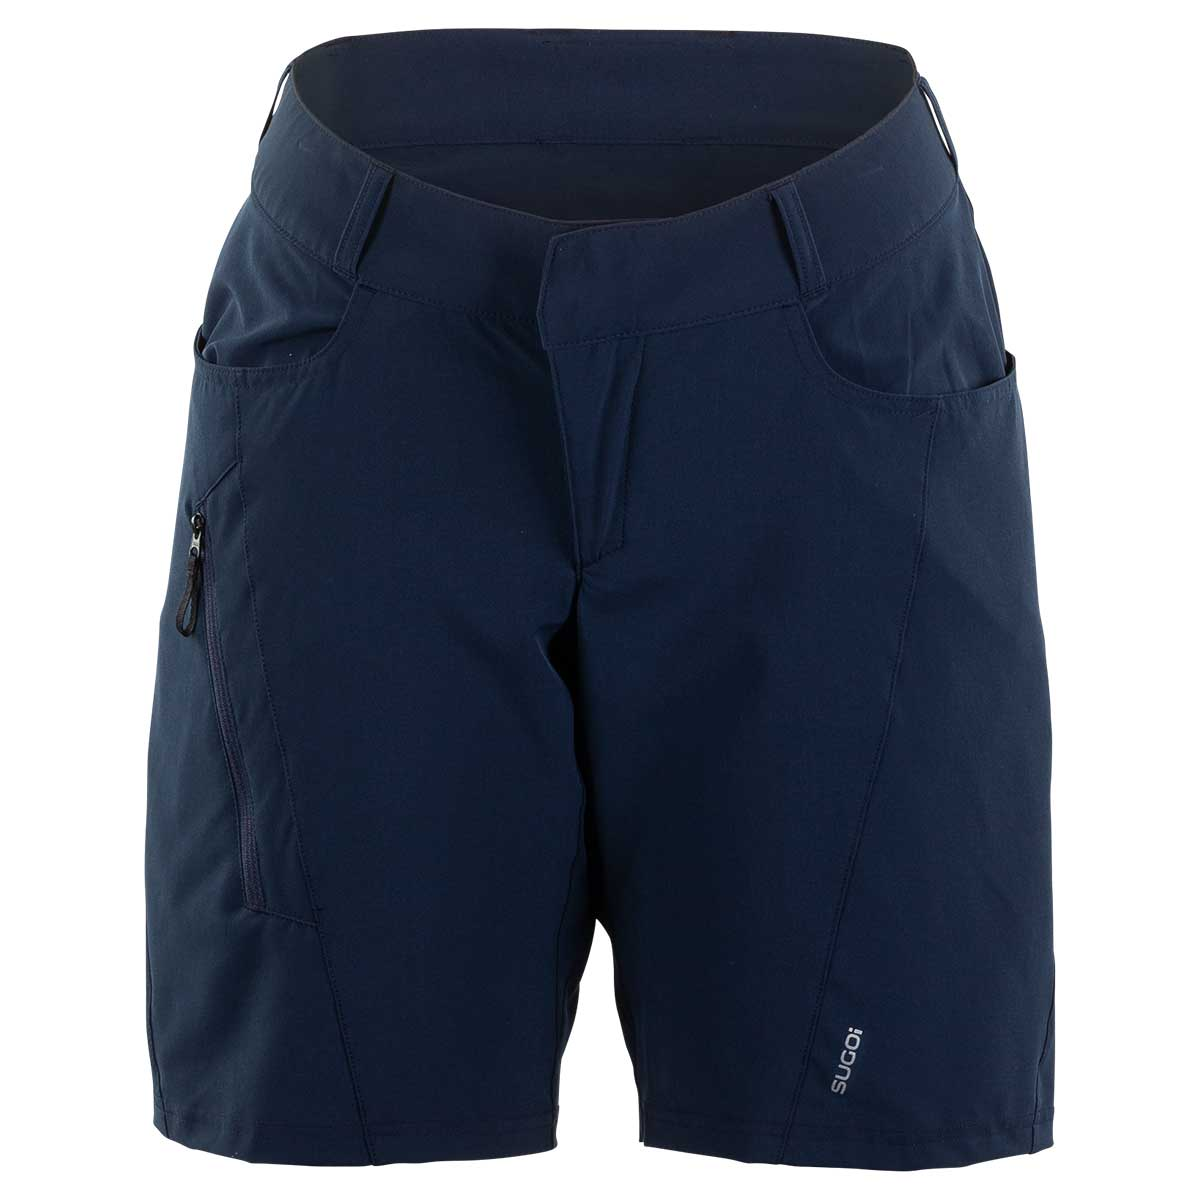 Sugoi women's RPM 2 Short in Deep Navy